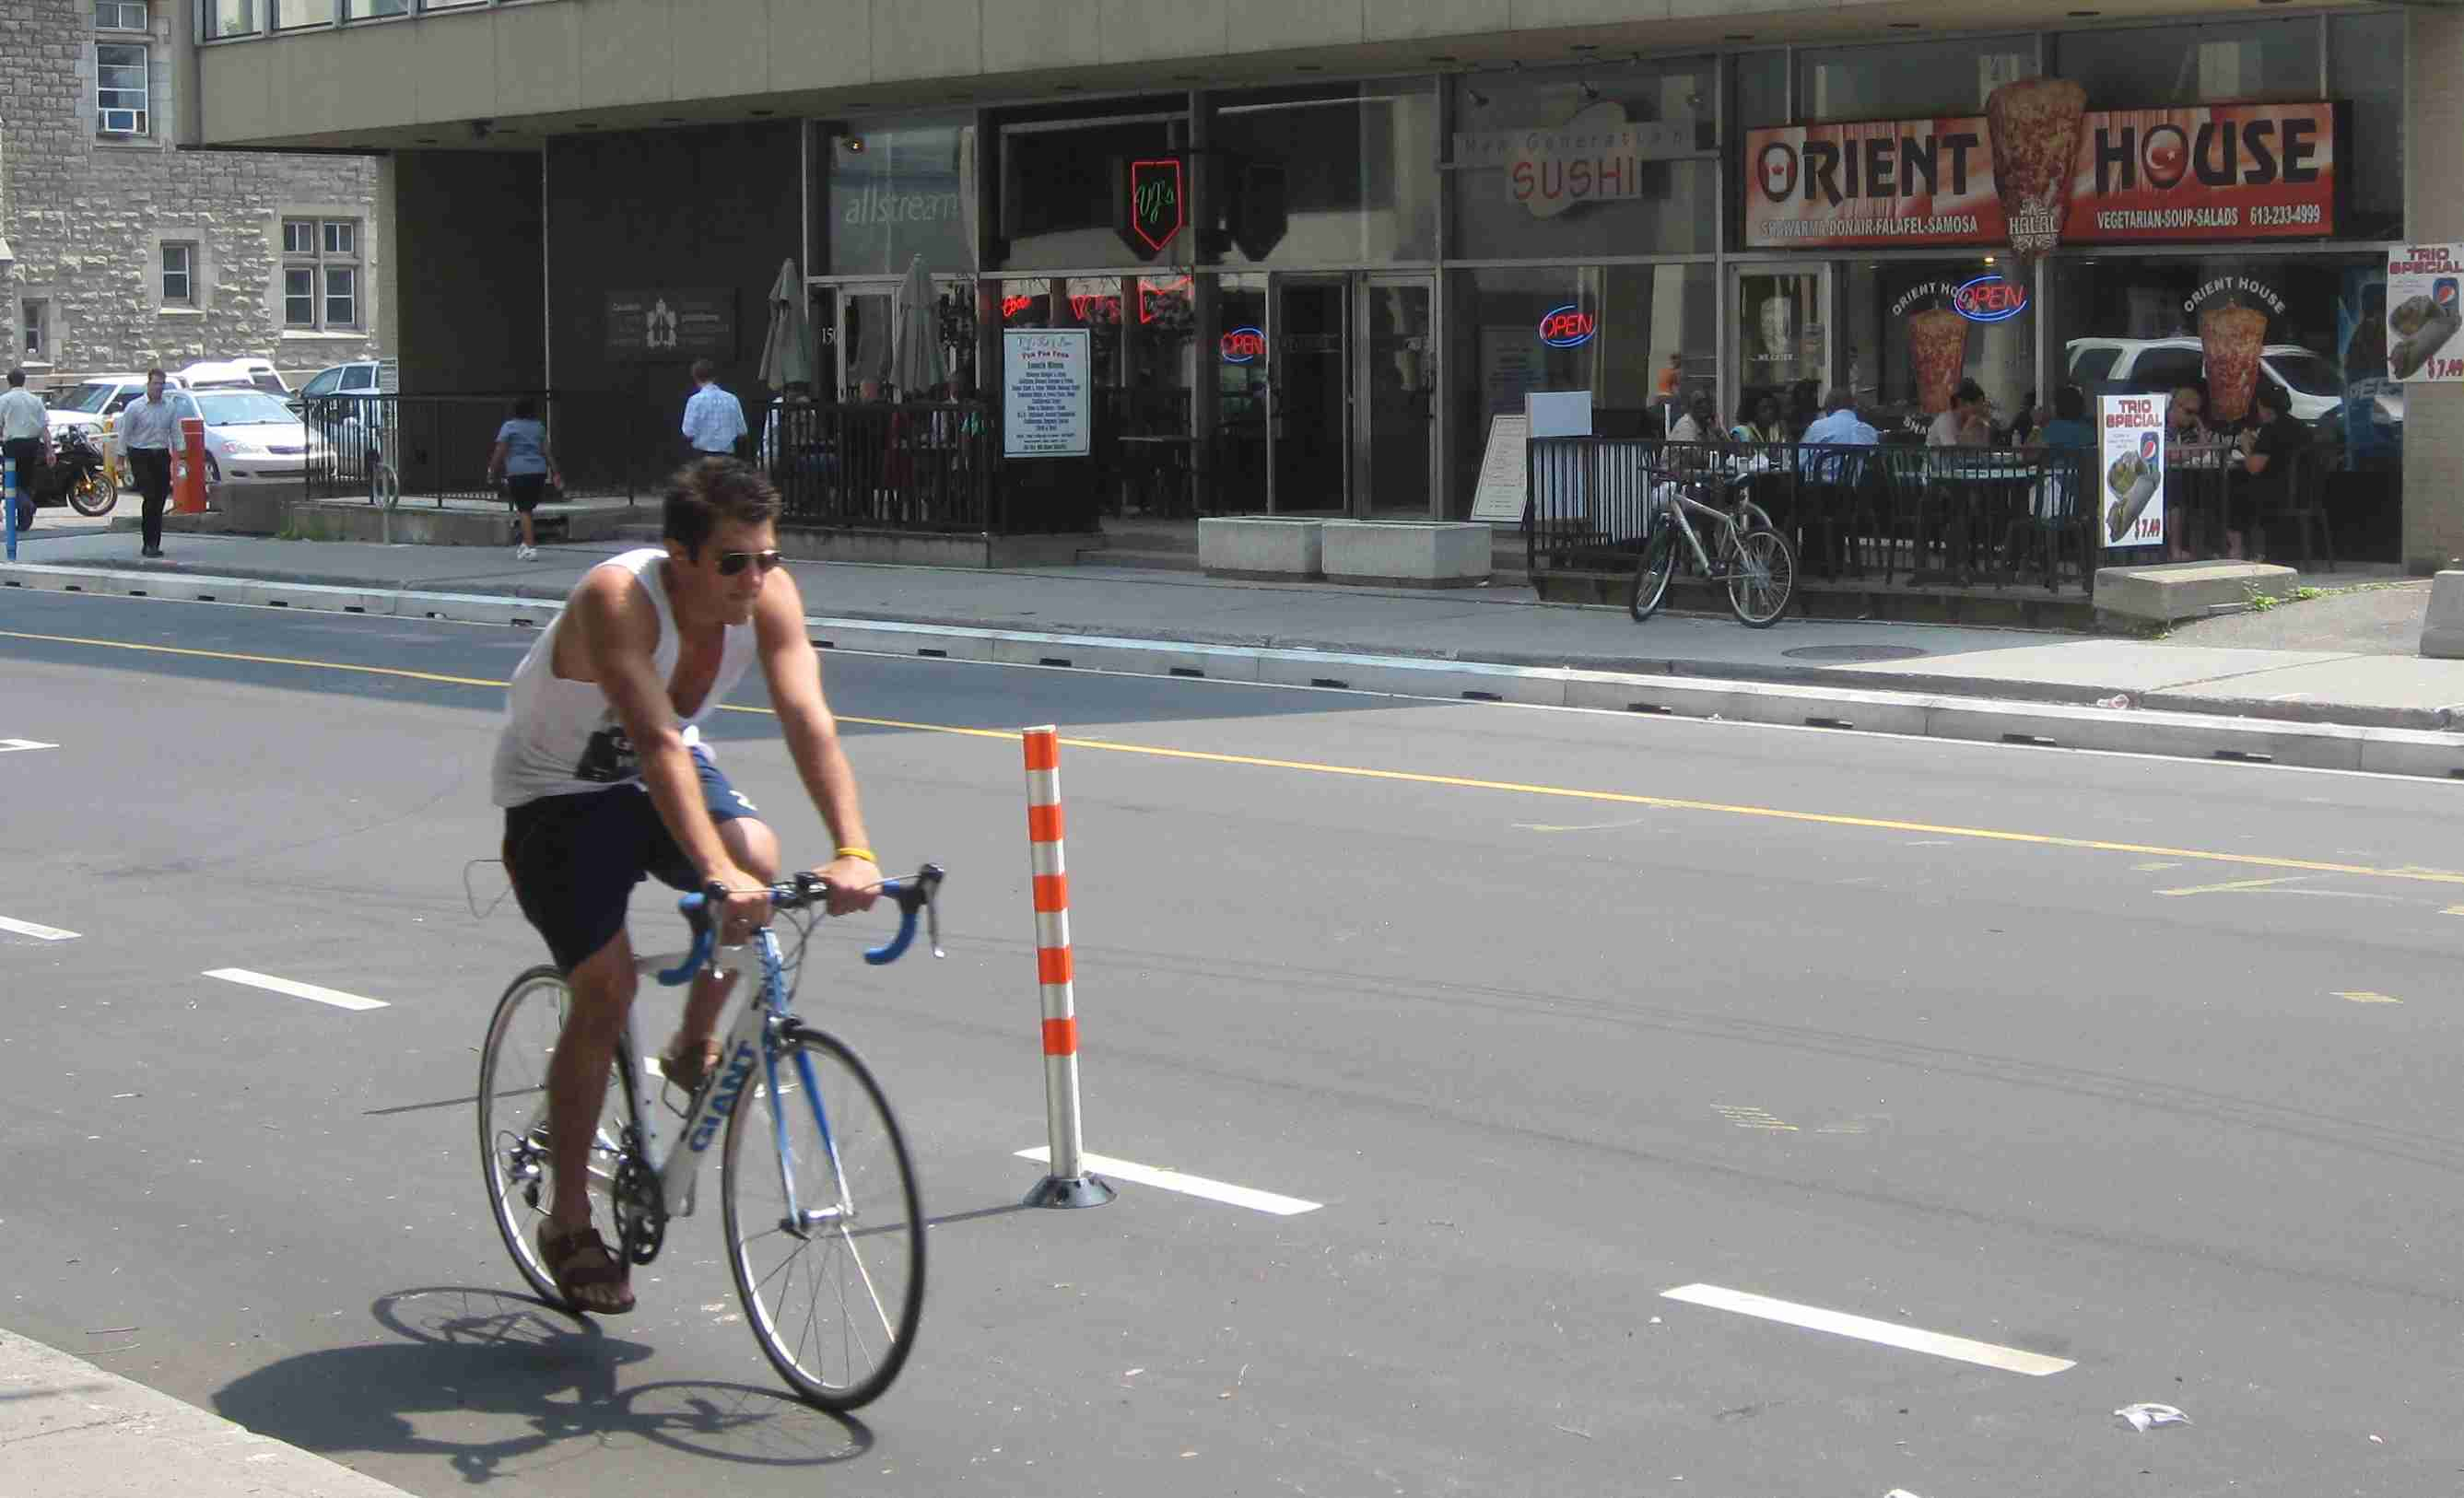 Ottawa Bicycle Culture – Orient House